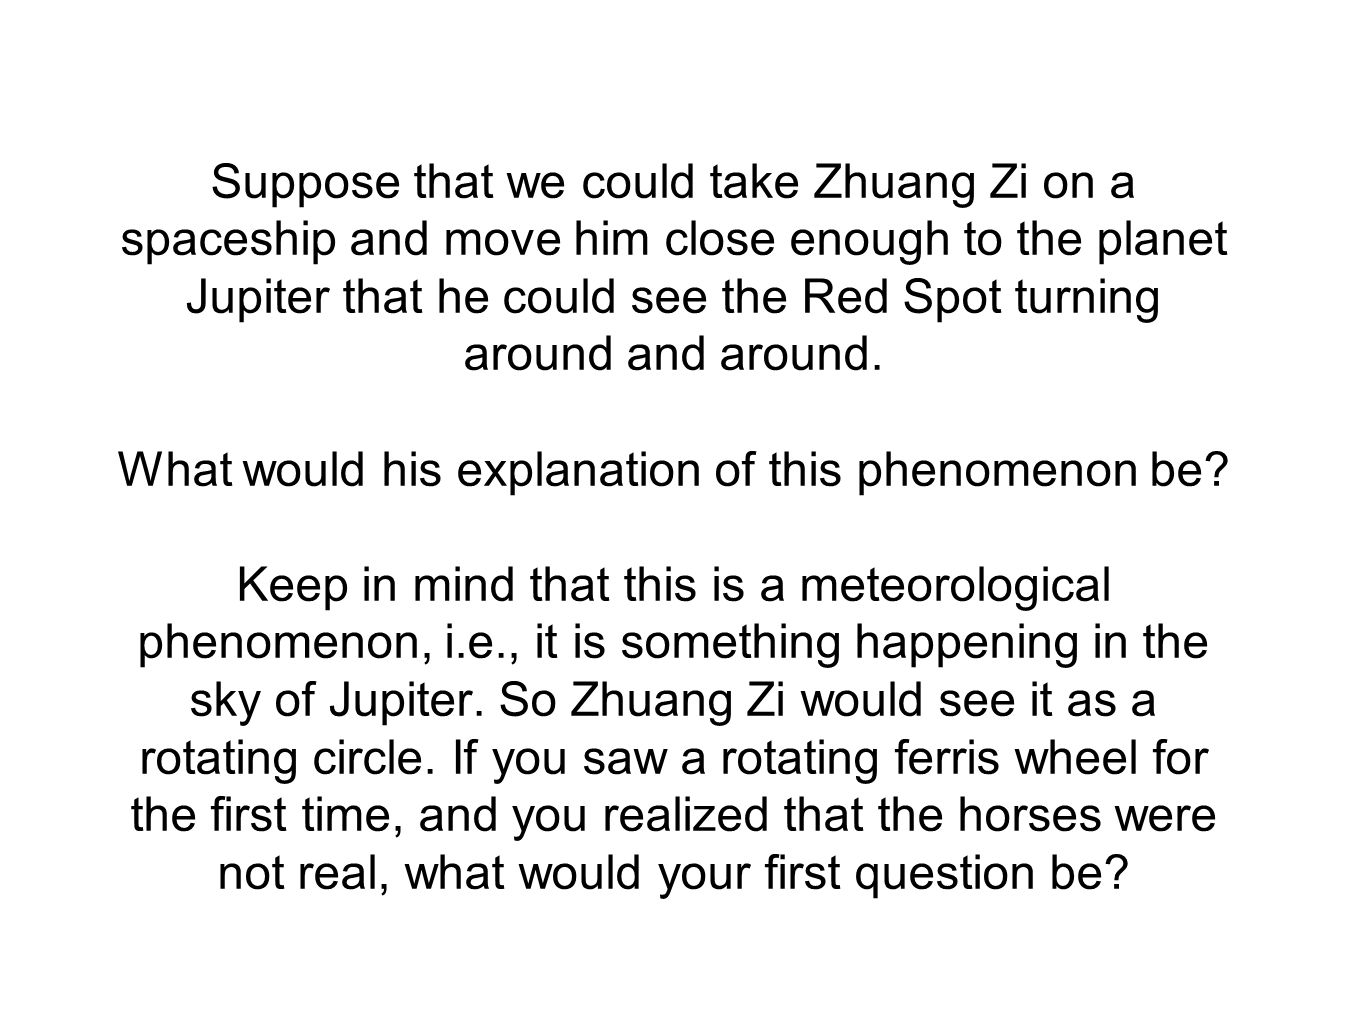 Suppose that we could take Zhuang Zi on a spaceship and move him close enough to the planet Jupiter that he could see the Red Spot turning around and around.